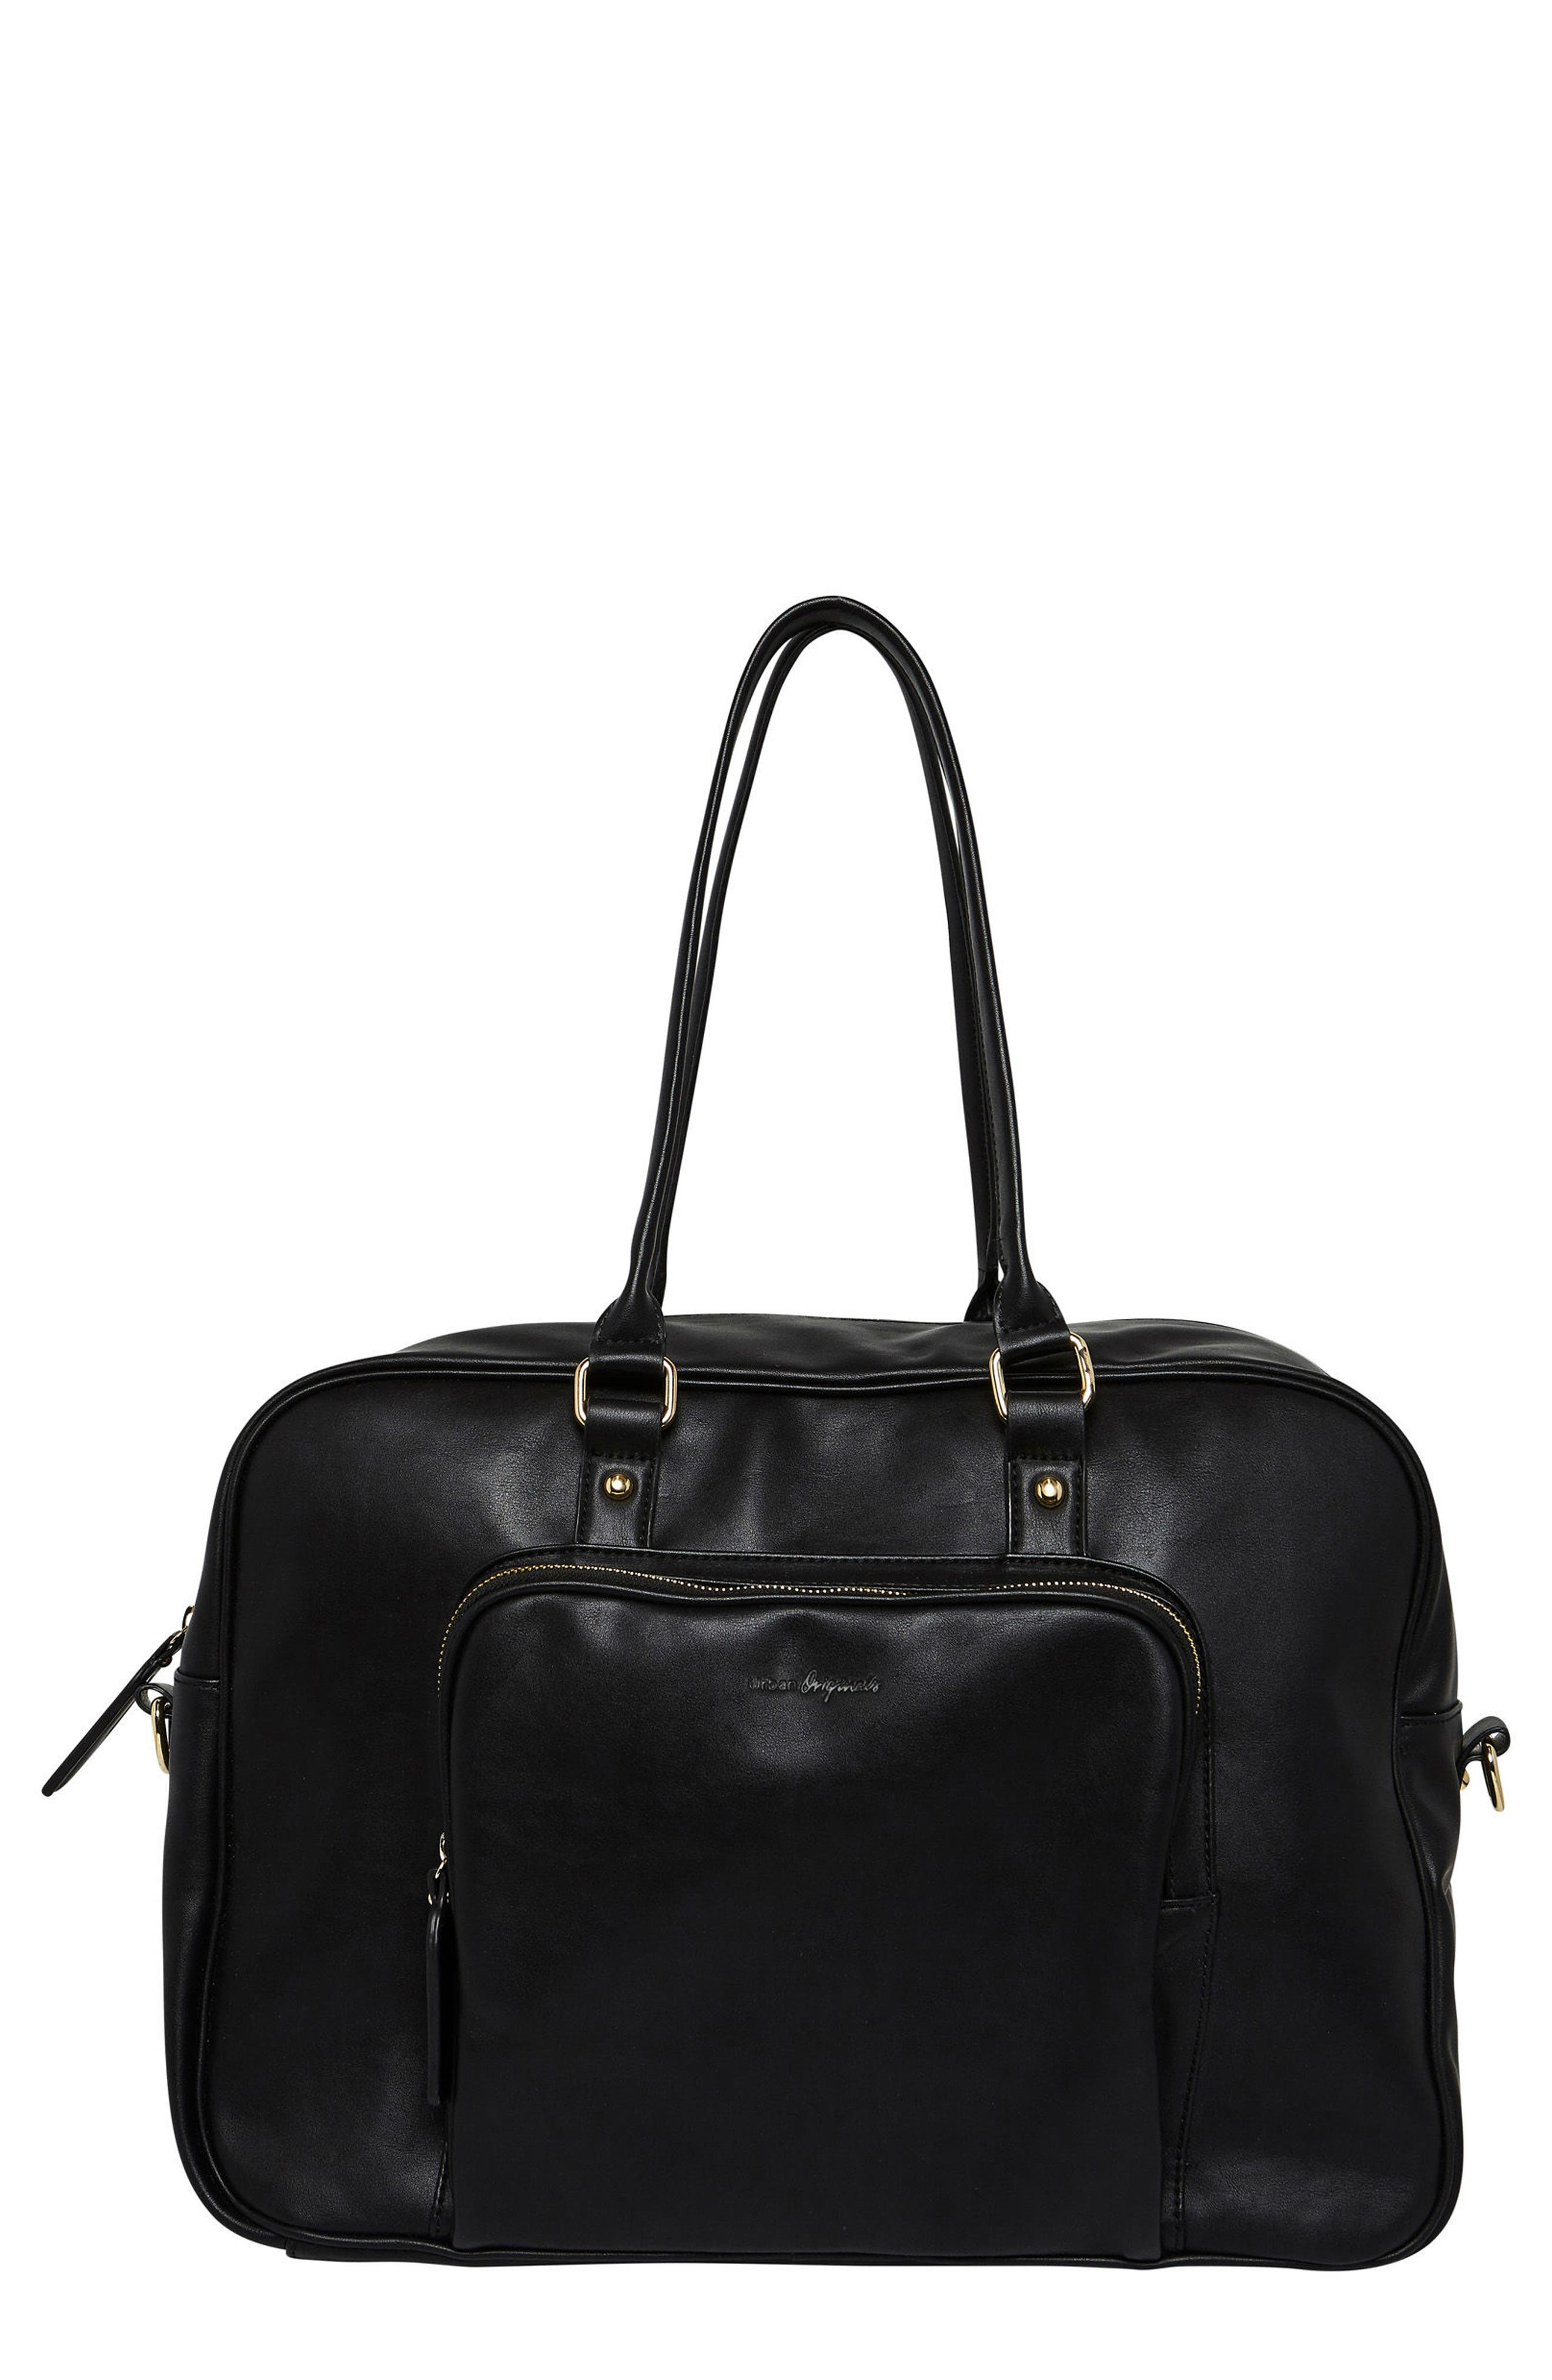 A Million Reasons Vegan Leather Tote,                         Main,                         color, 001